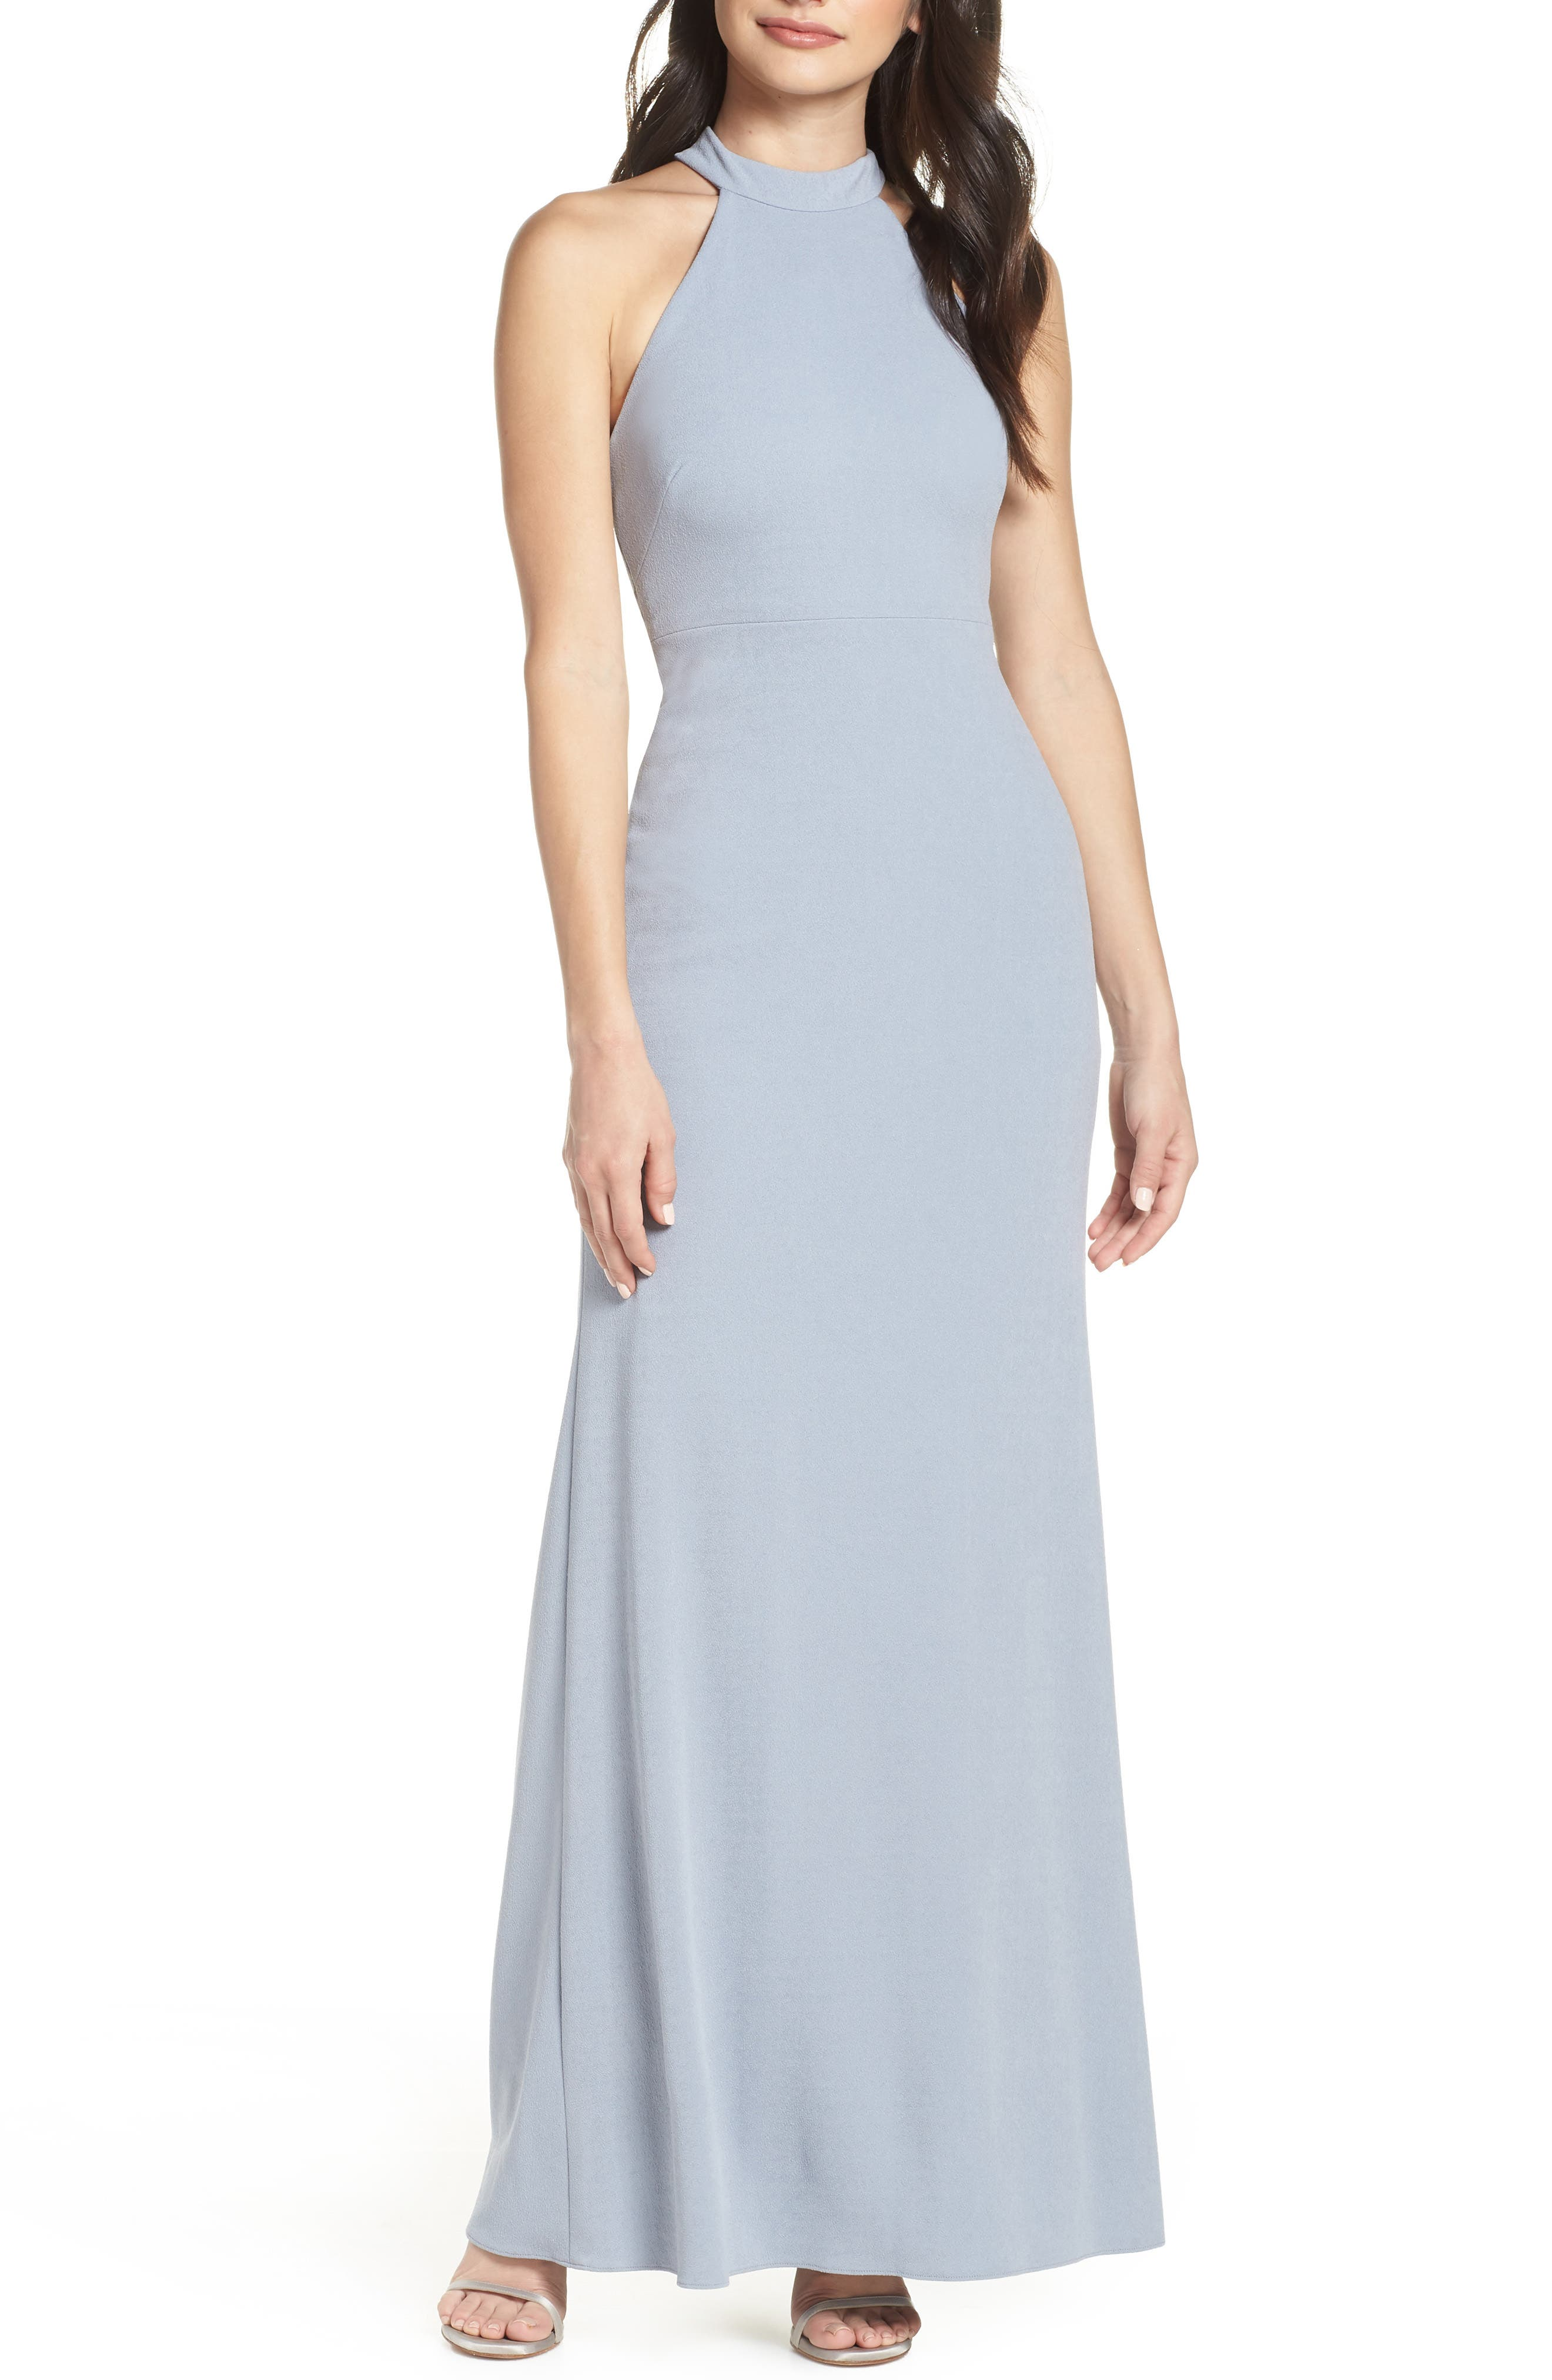 AFTER SIX Halter Neck Stretch Crepe Evening Dress, Main, color, PLATINUM